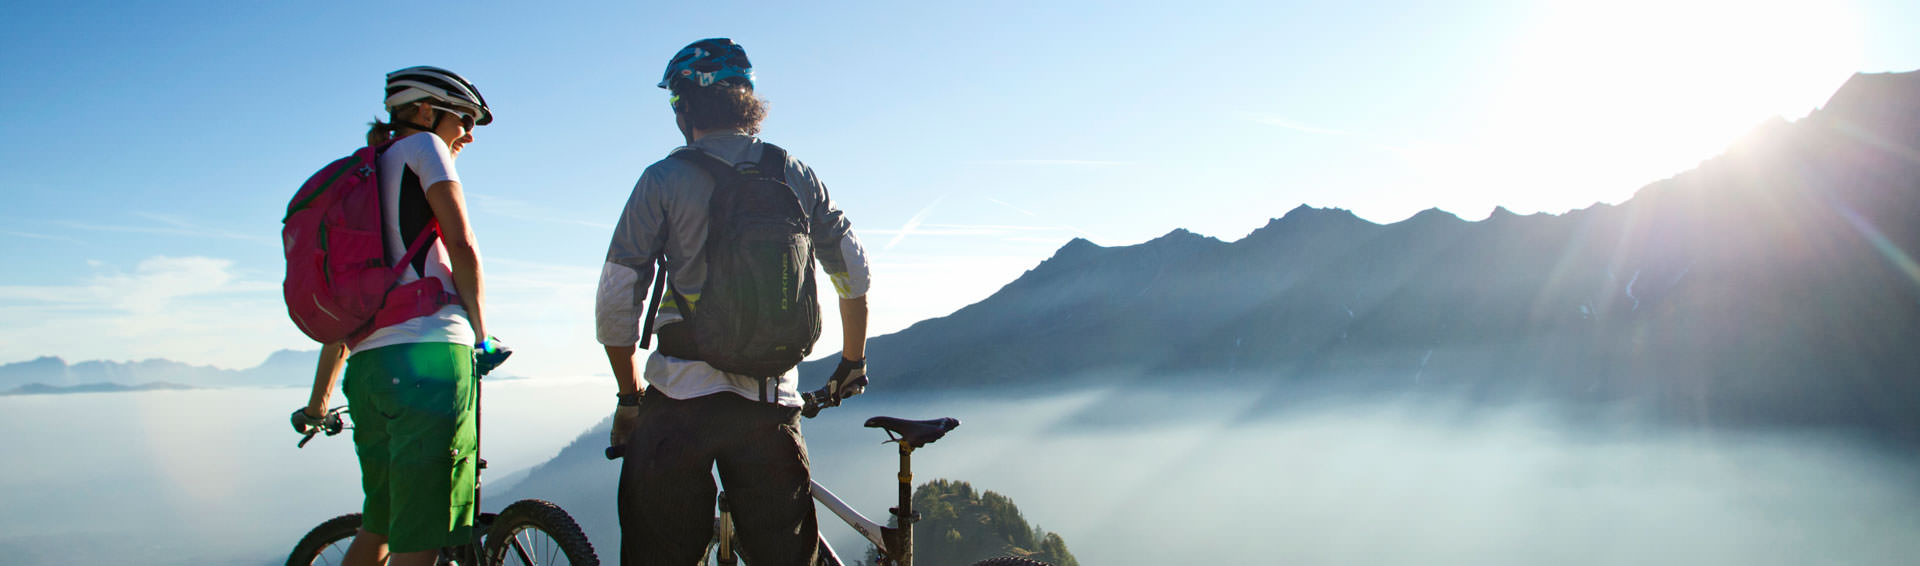 Couple with mountainbikes on a mountain